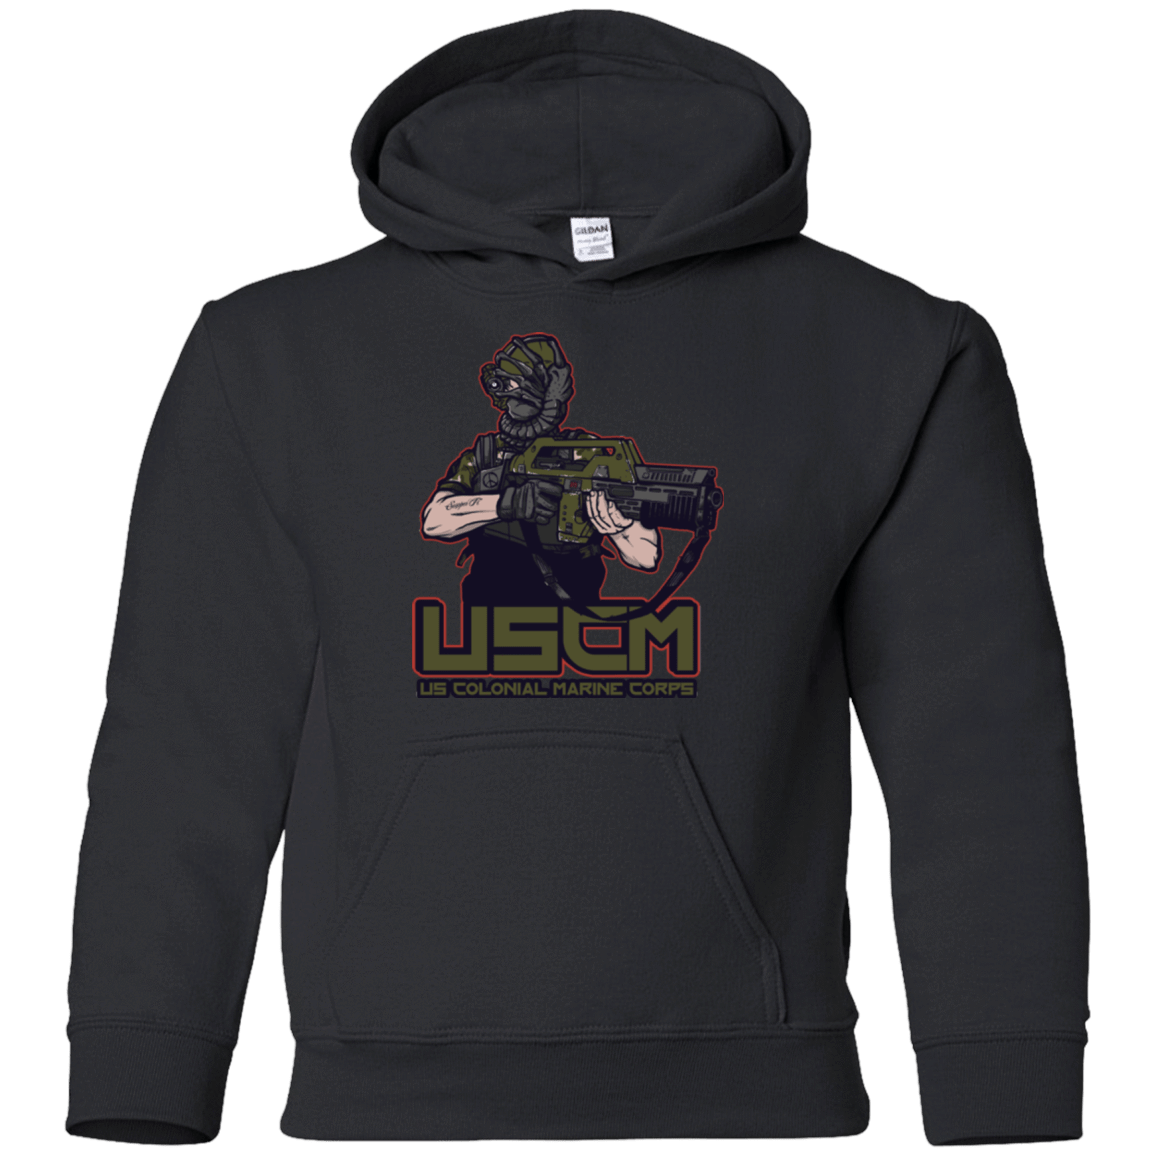 Sweatshirts Black / YS Colonial Facehugger Youth Hoodie